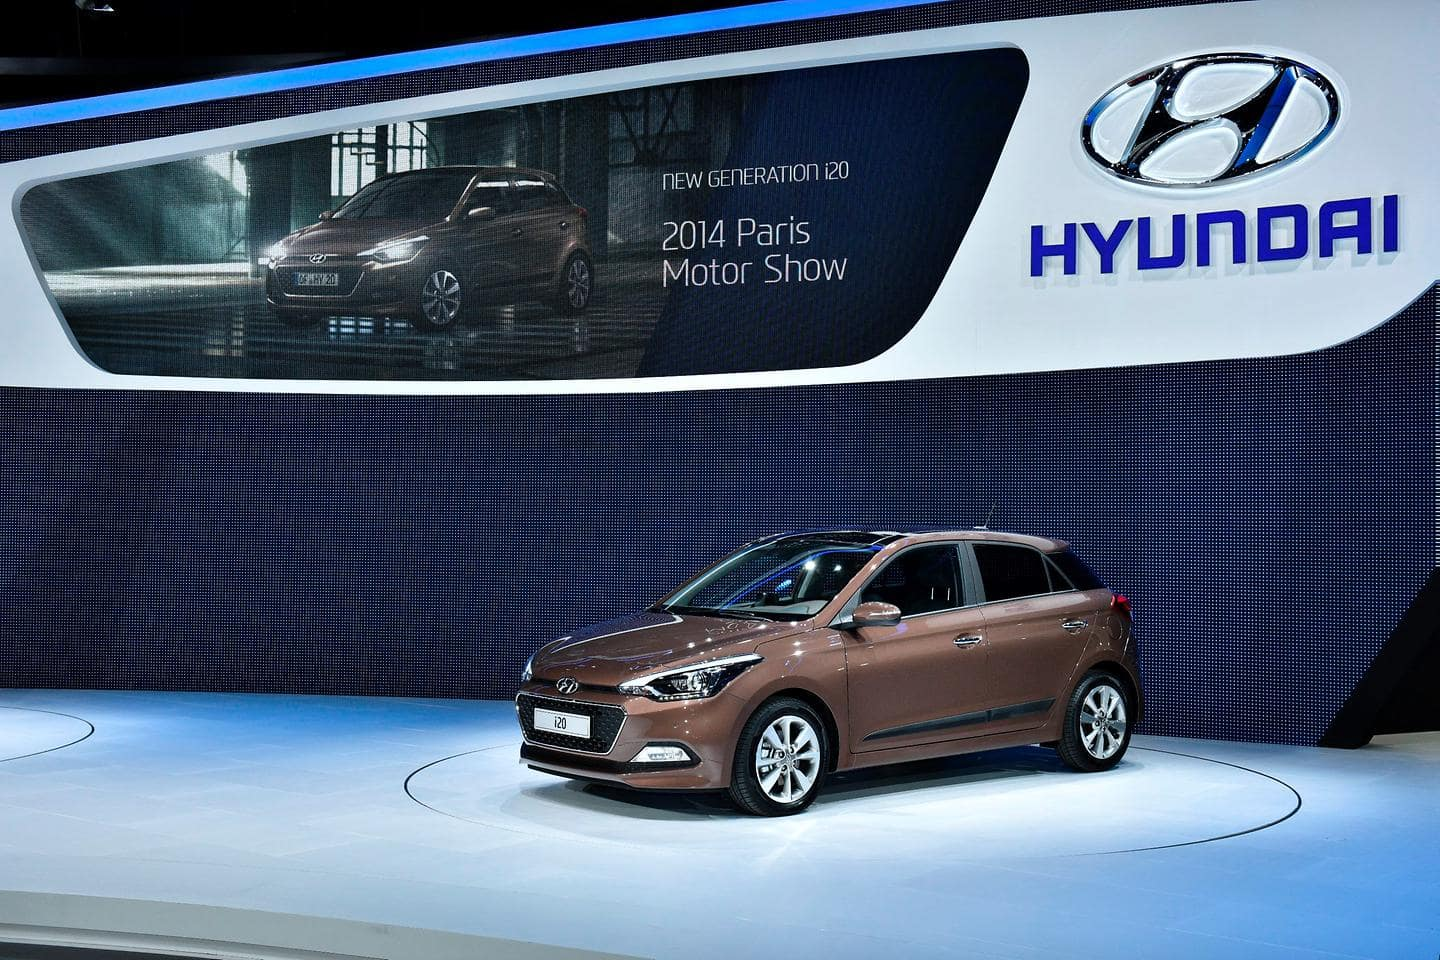 Hyundai to showcase new downsized turbocharged engines and seven!speed dual clutch transmission in Paris